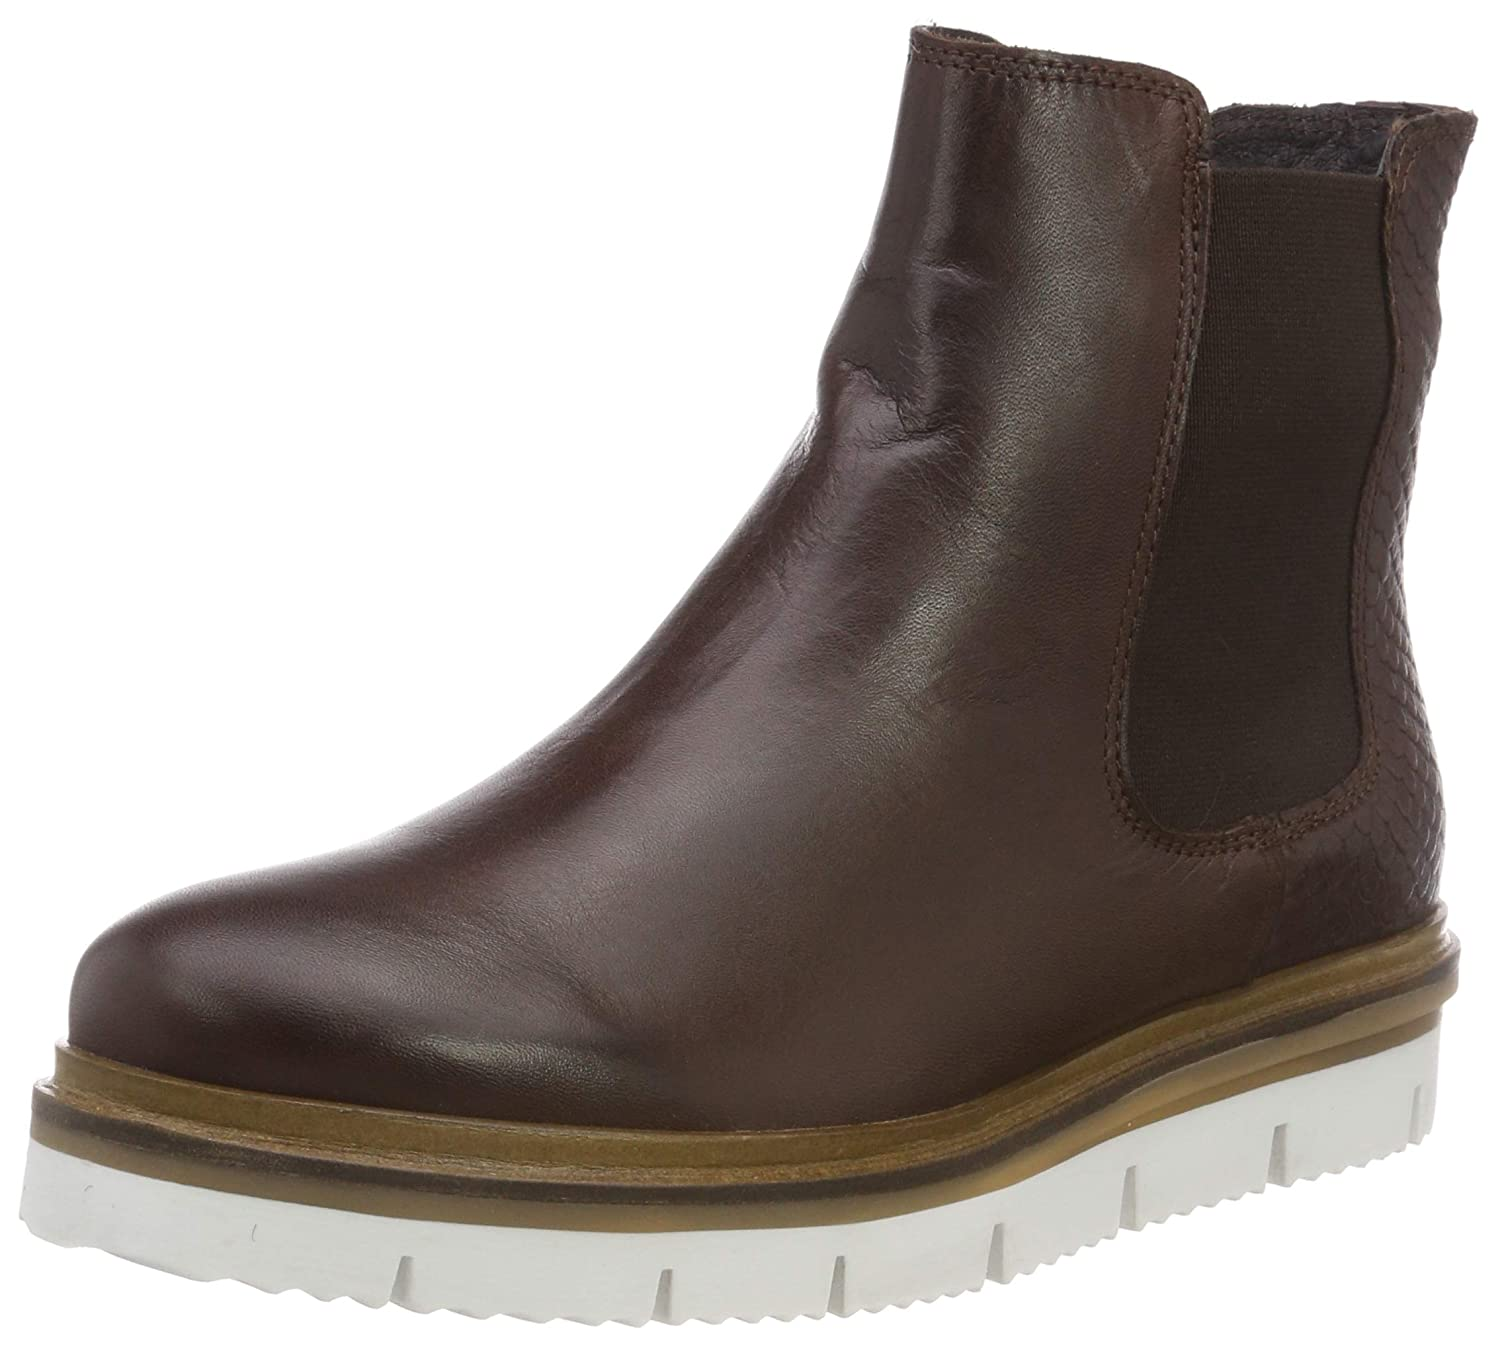 Bianco Damen Warm Cleated Chelsea Boots